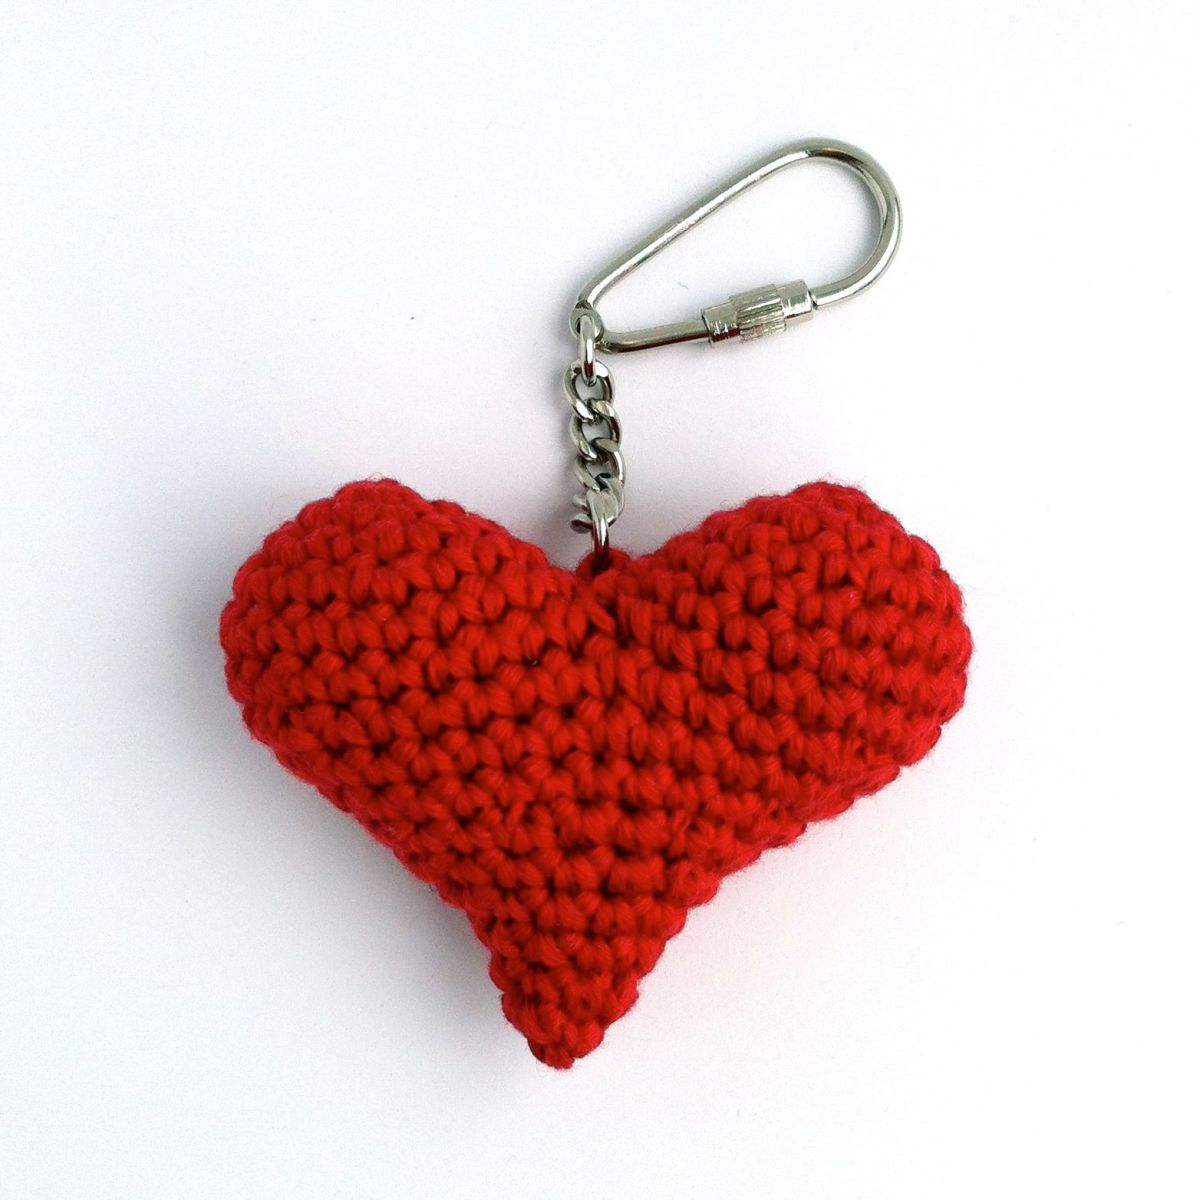 Eco-friendly Red Heart Keychain in Organic Cotton